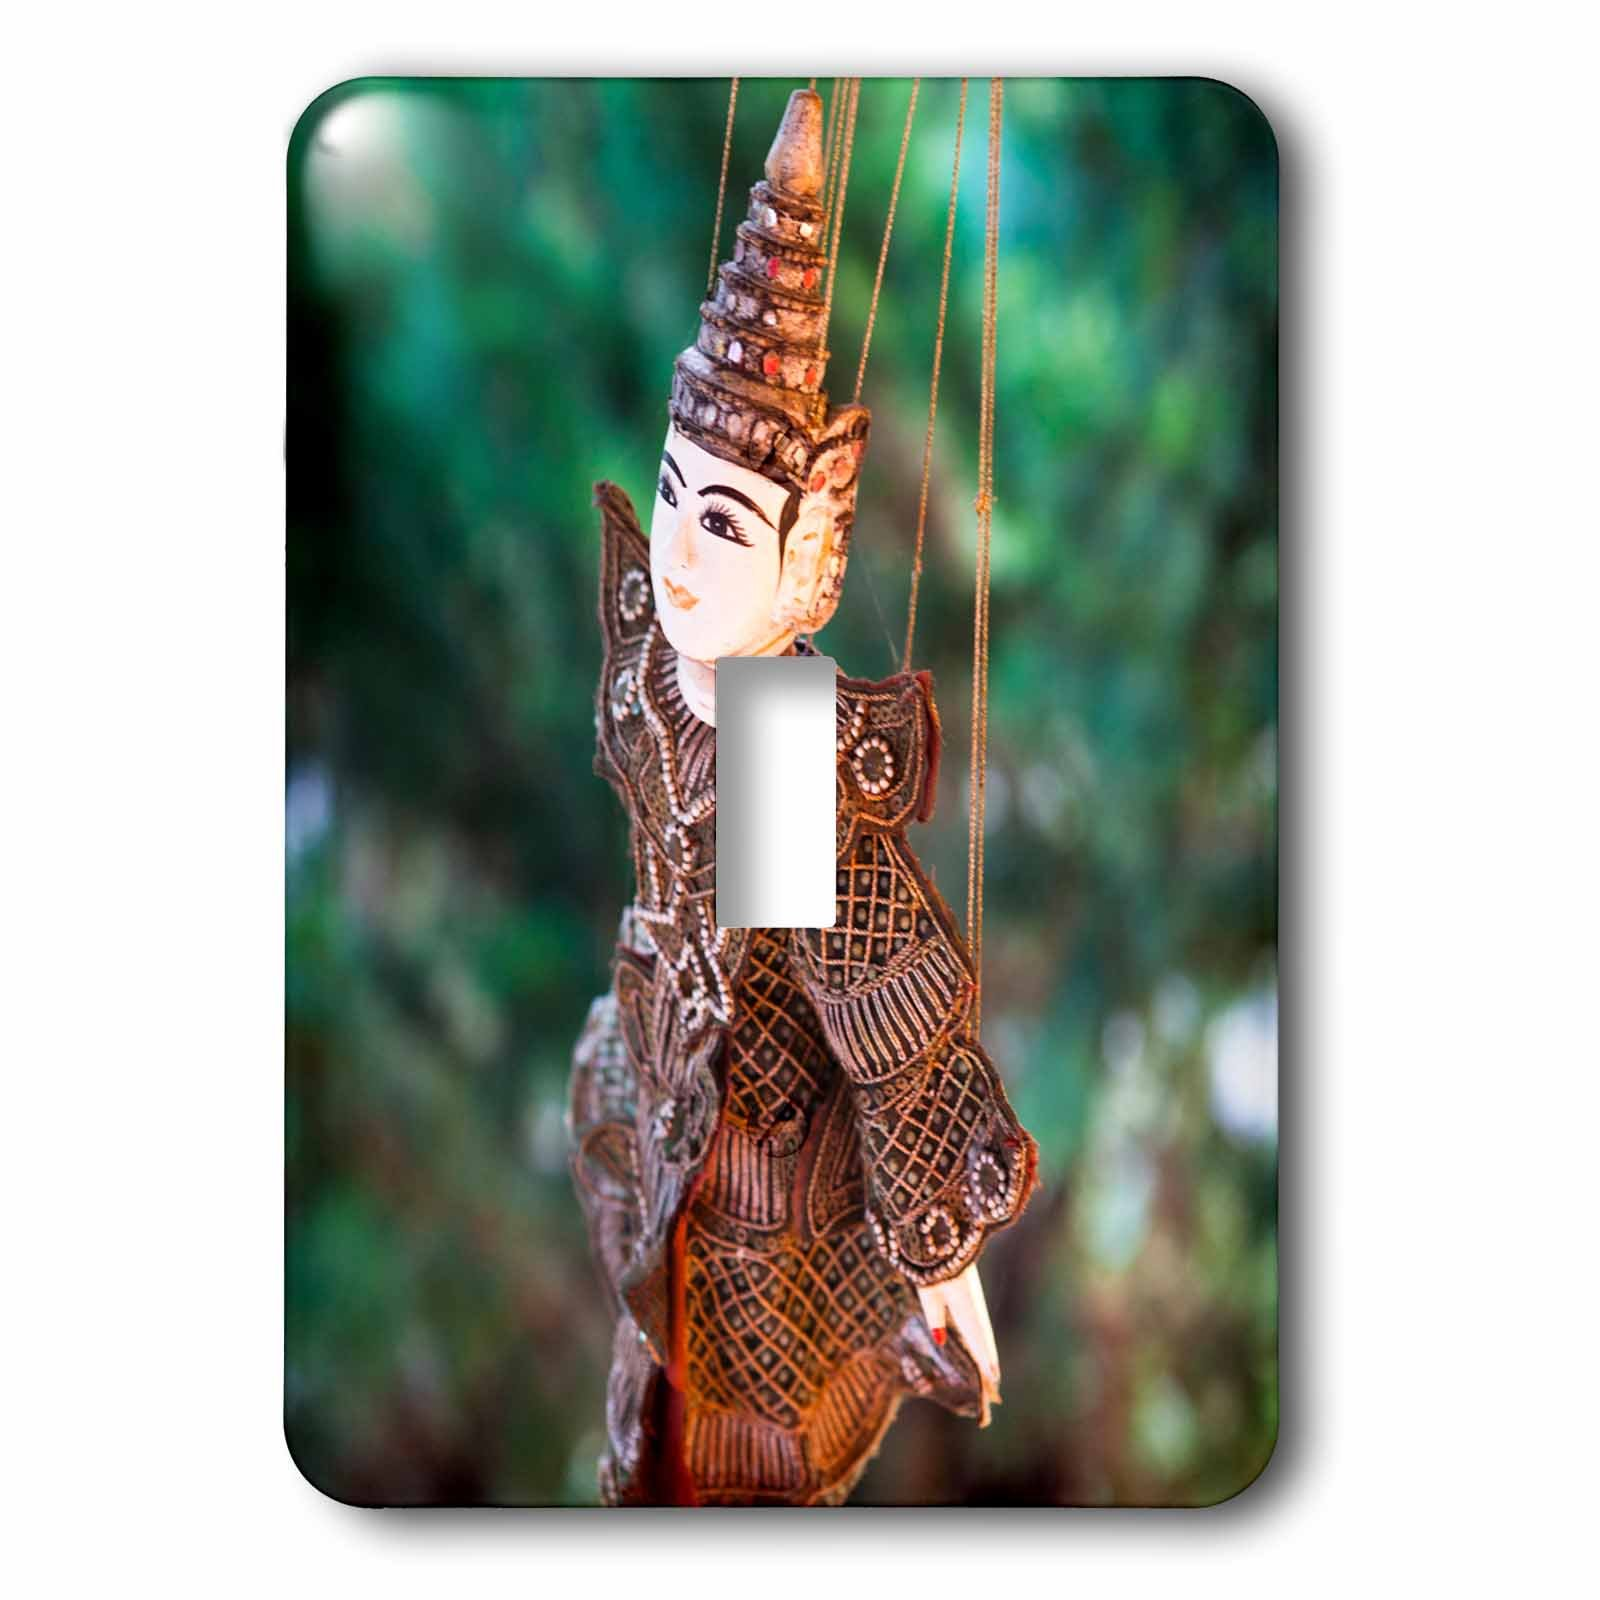 Danita Delimont - Toys - A local Thai puppet - Light Switch Covers - single toggle switch (lsp_226036_1)